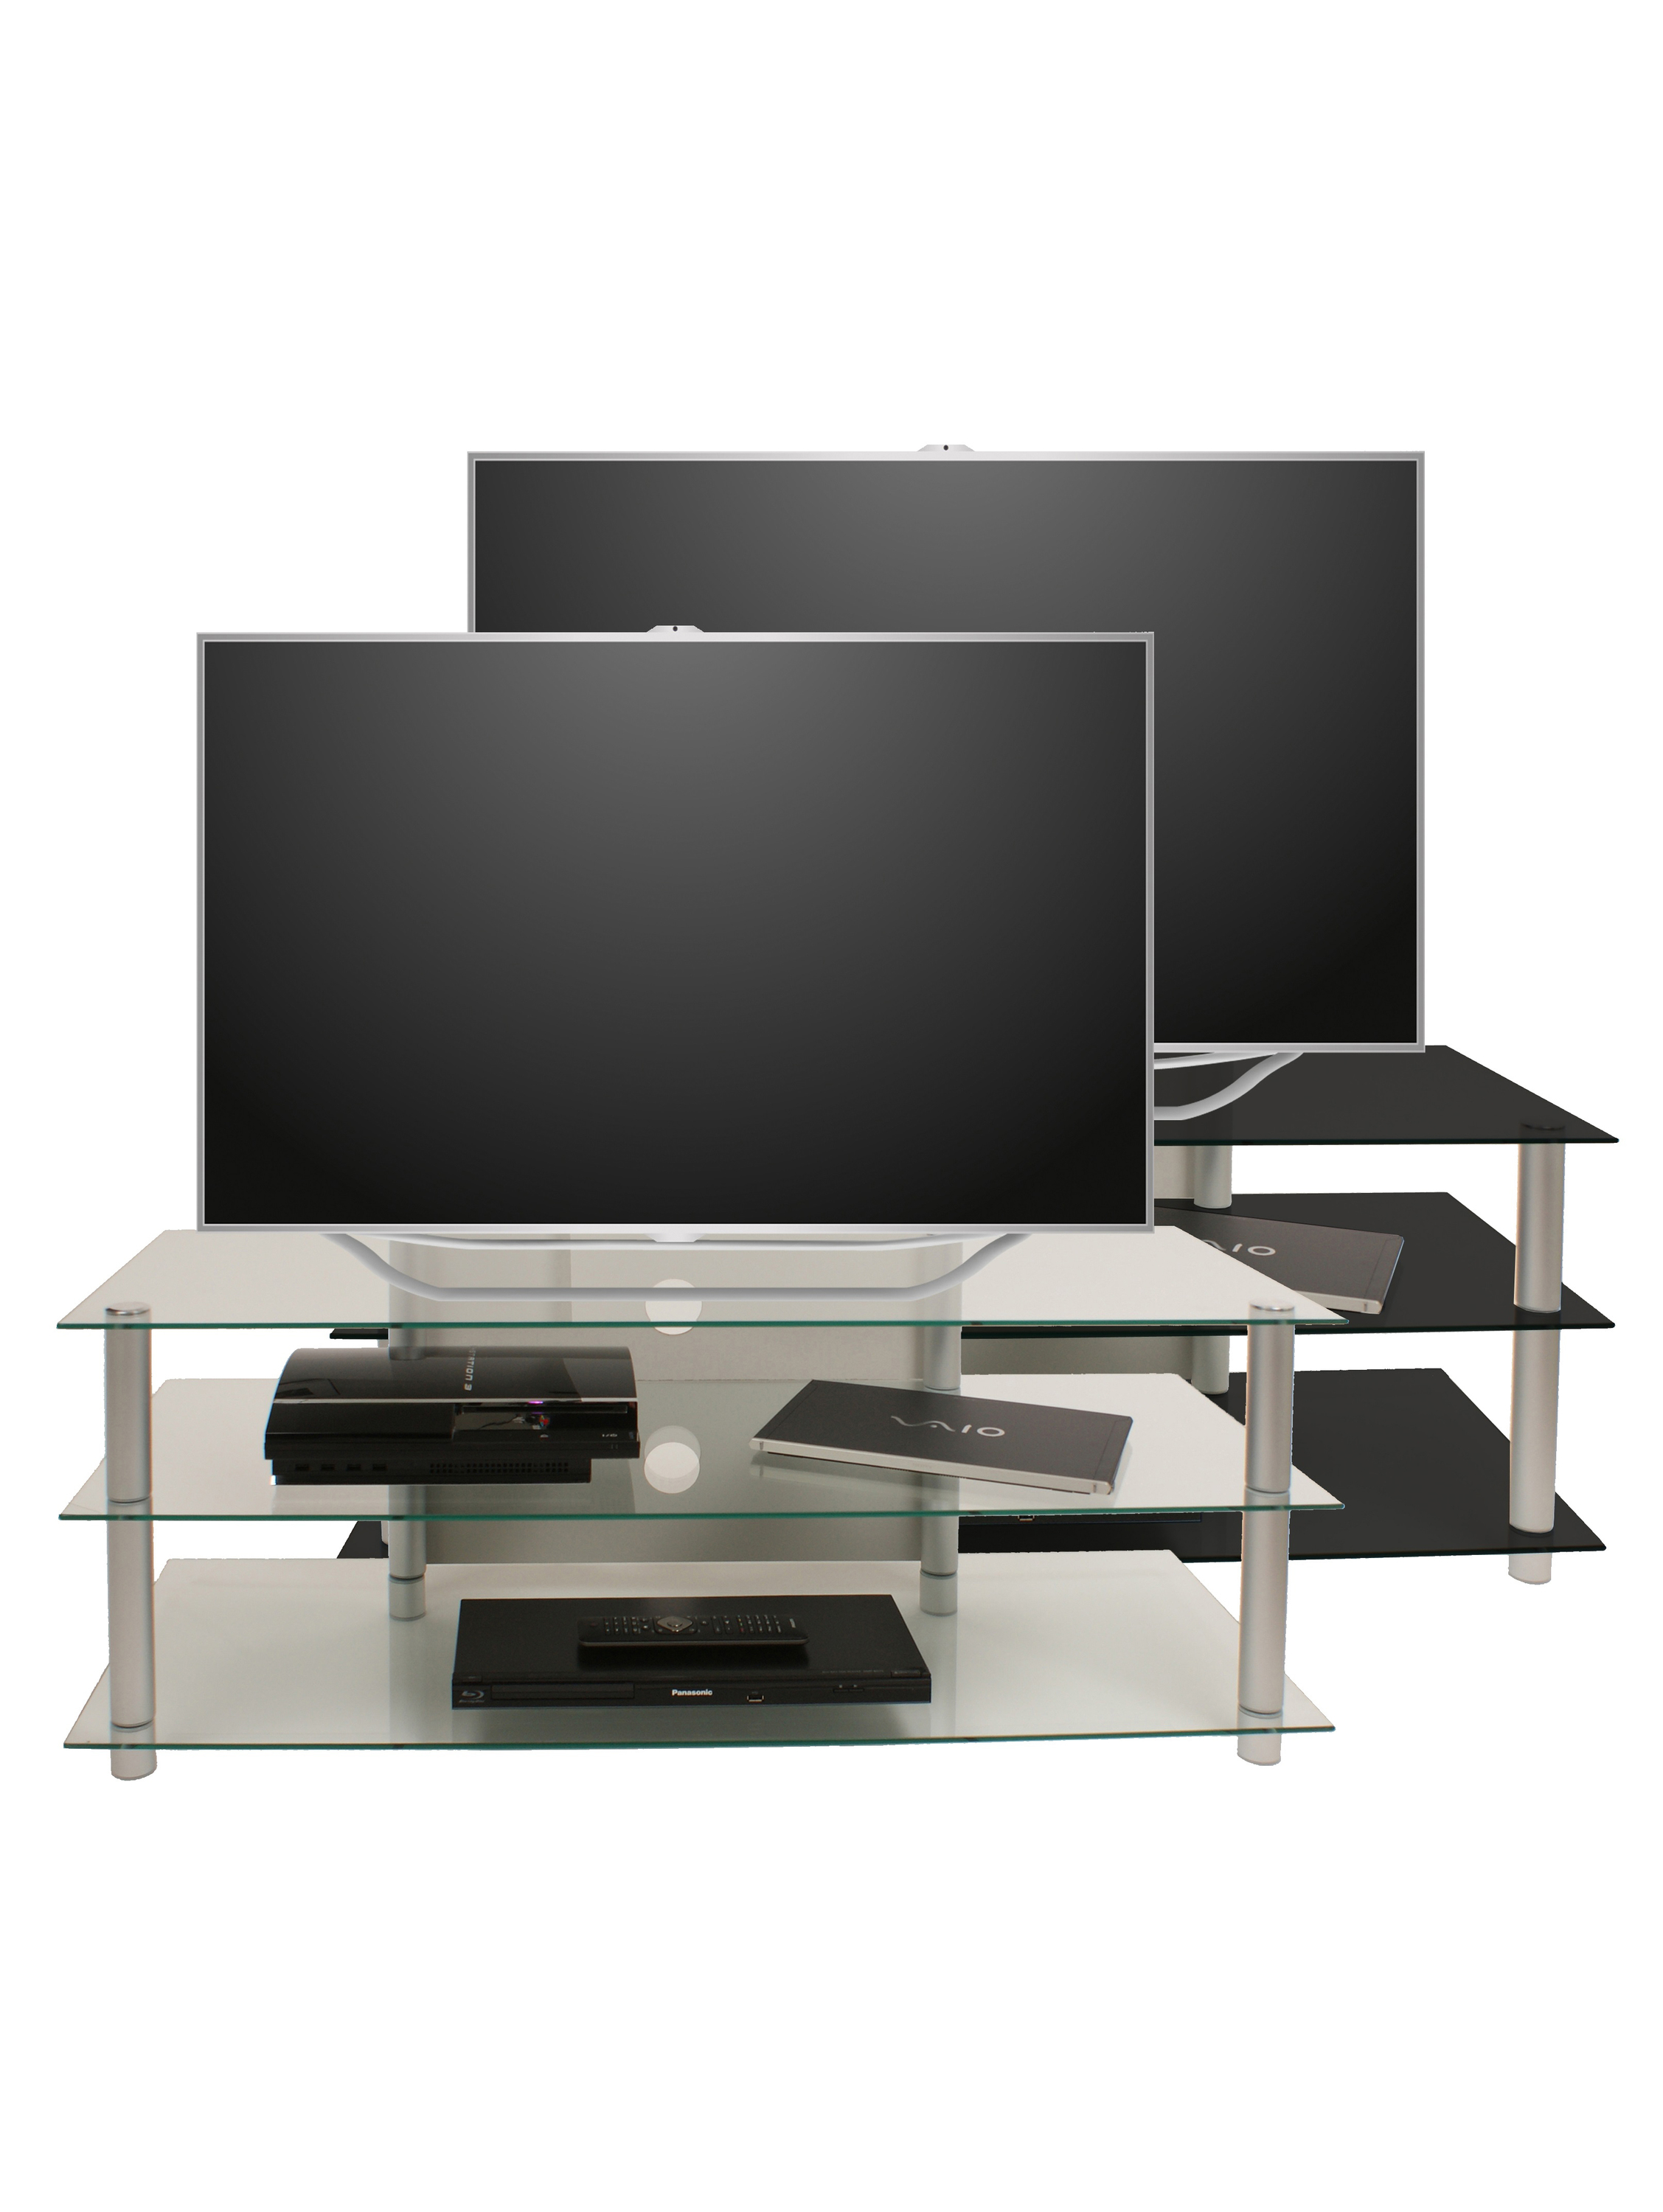 vcm gruppe vcm tv rack lowboard konsole fernsehtisch tv m bel bank glastisch tisch schrank. Black Bedroom Furniture Sets. Home Design Ideas